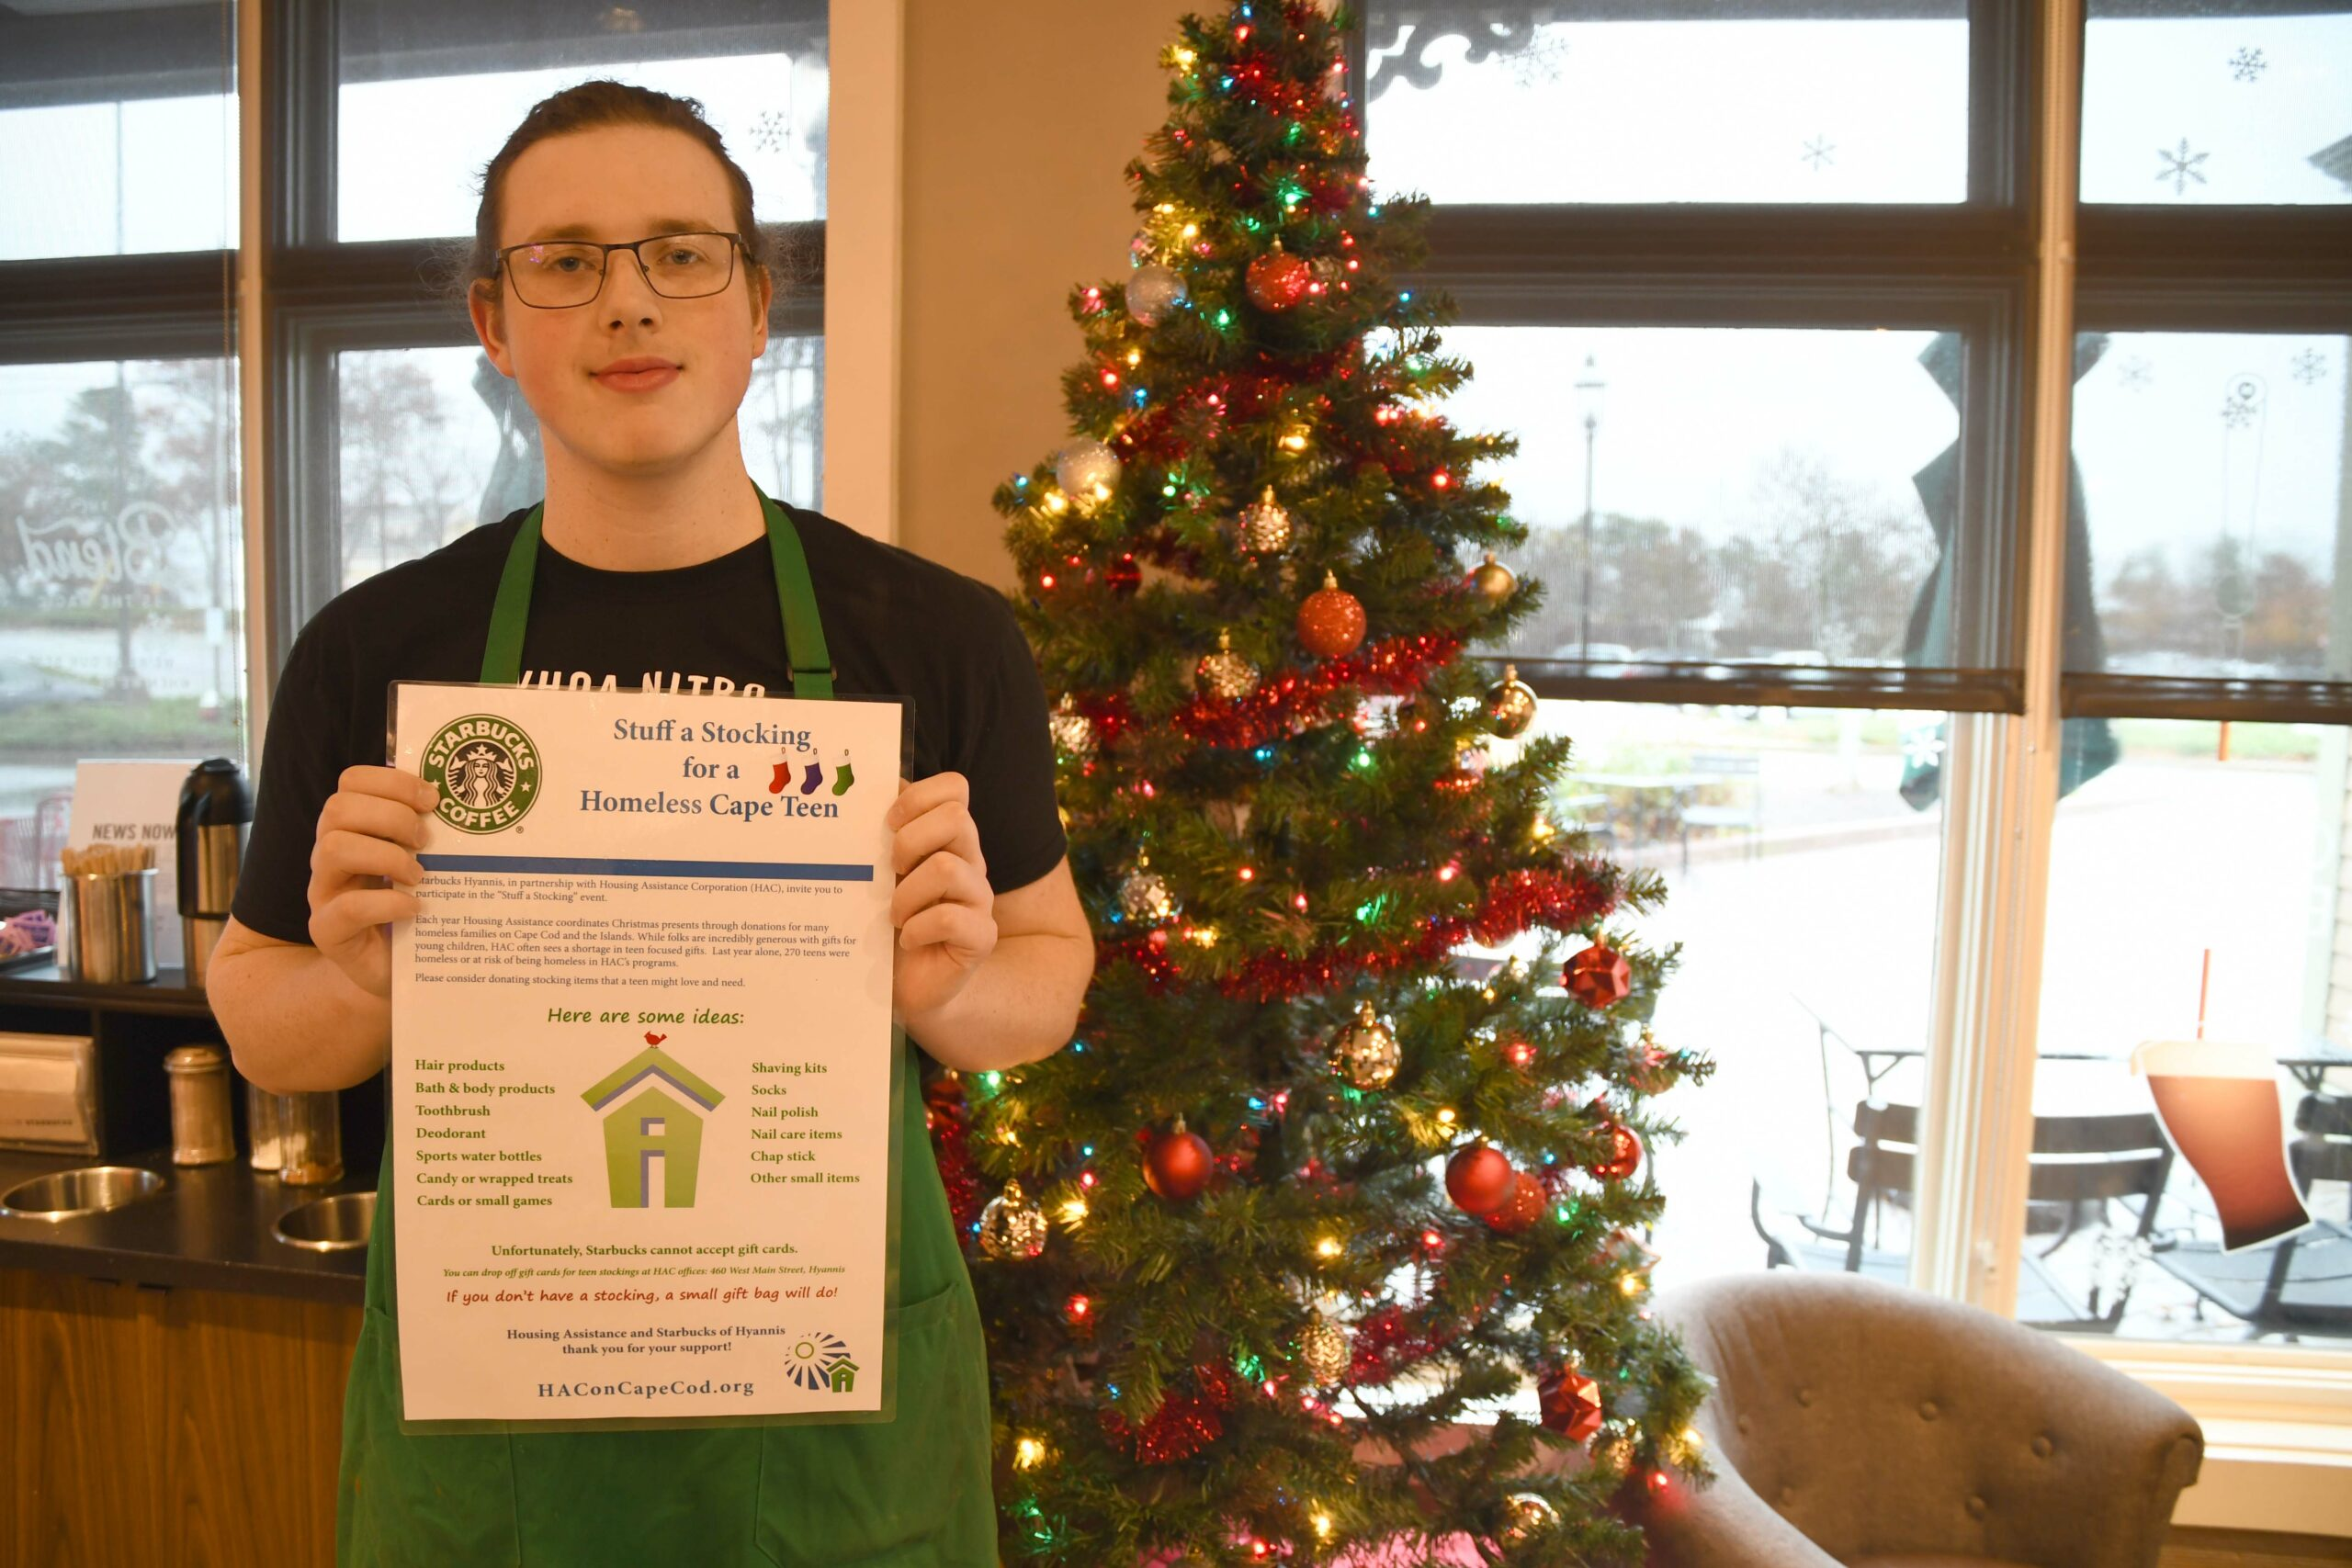 Photo of employee at Starbucks in Hyannis which is collecting stockings for homeless or at-risk homeless teens.